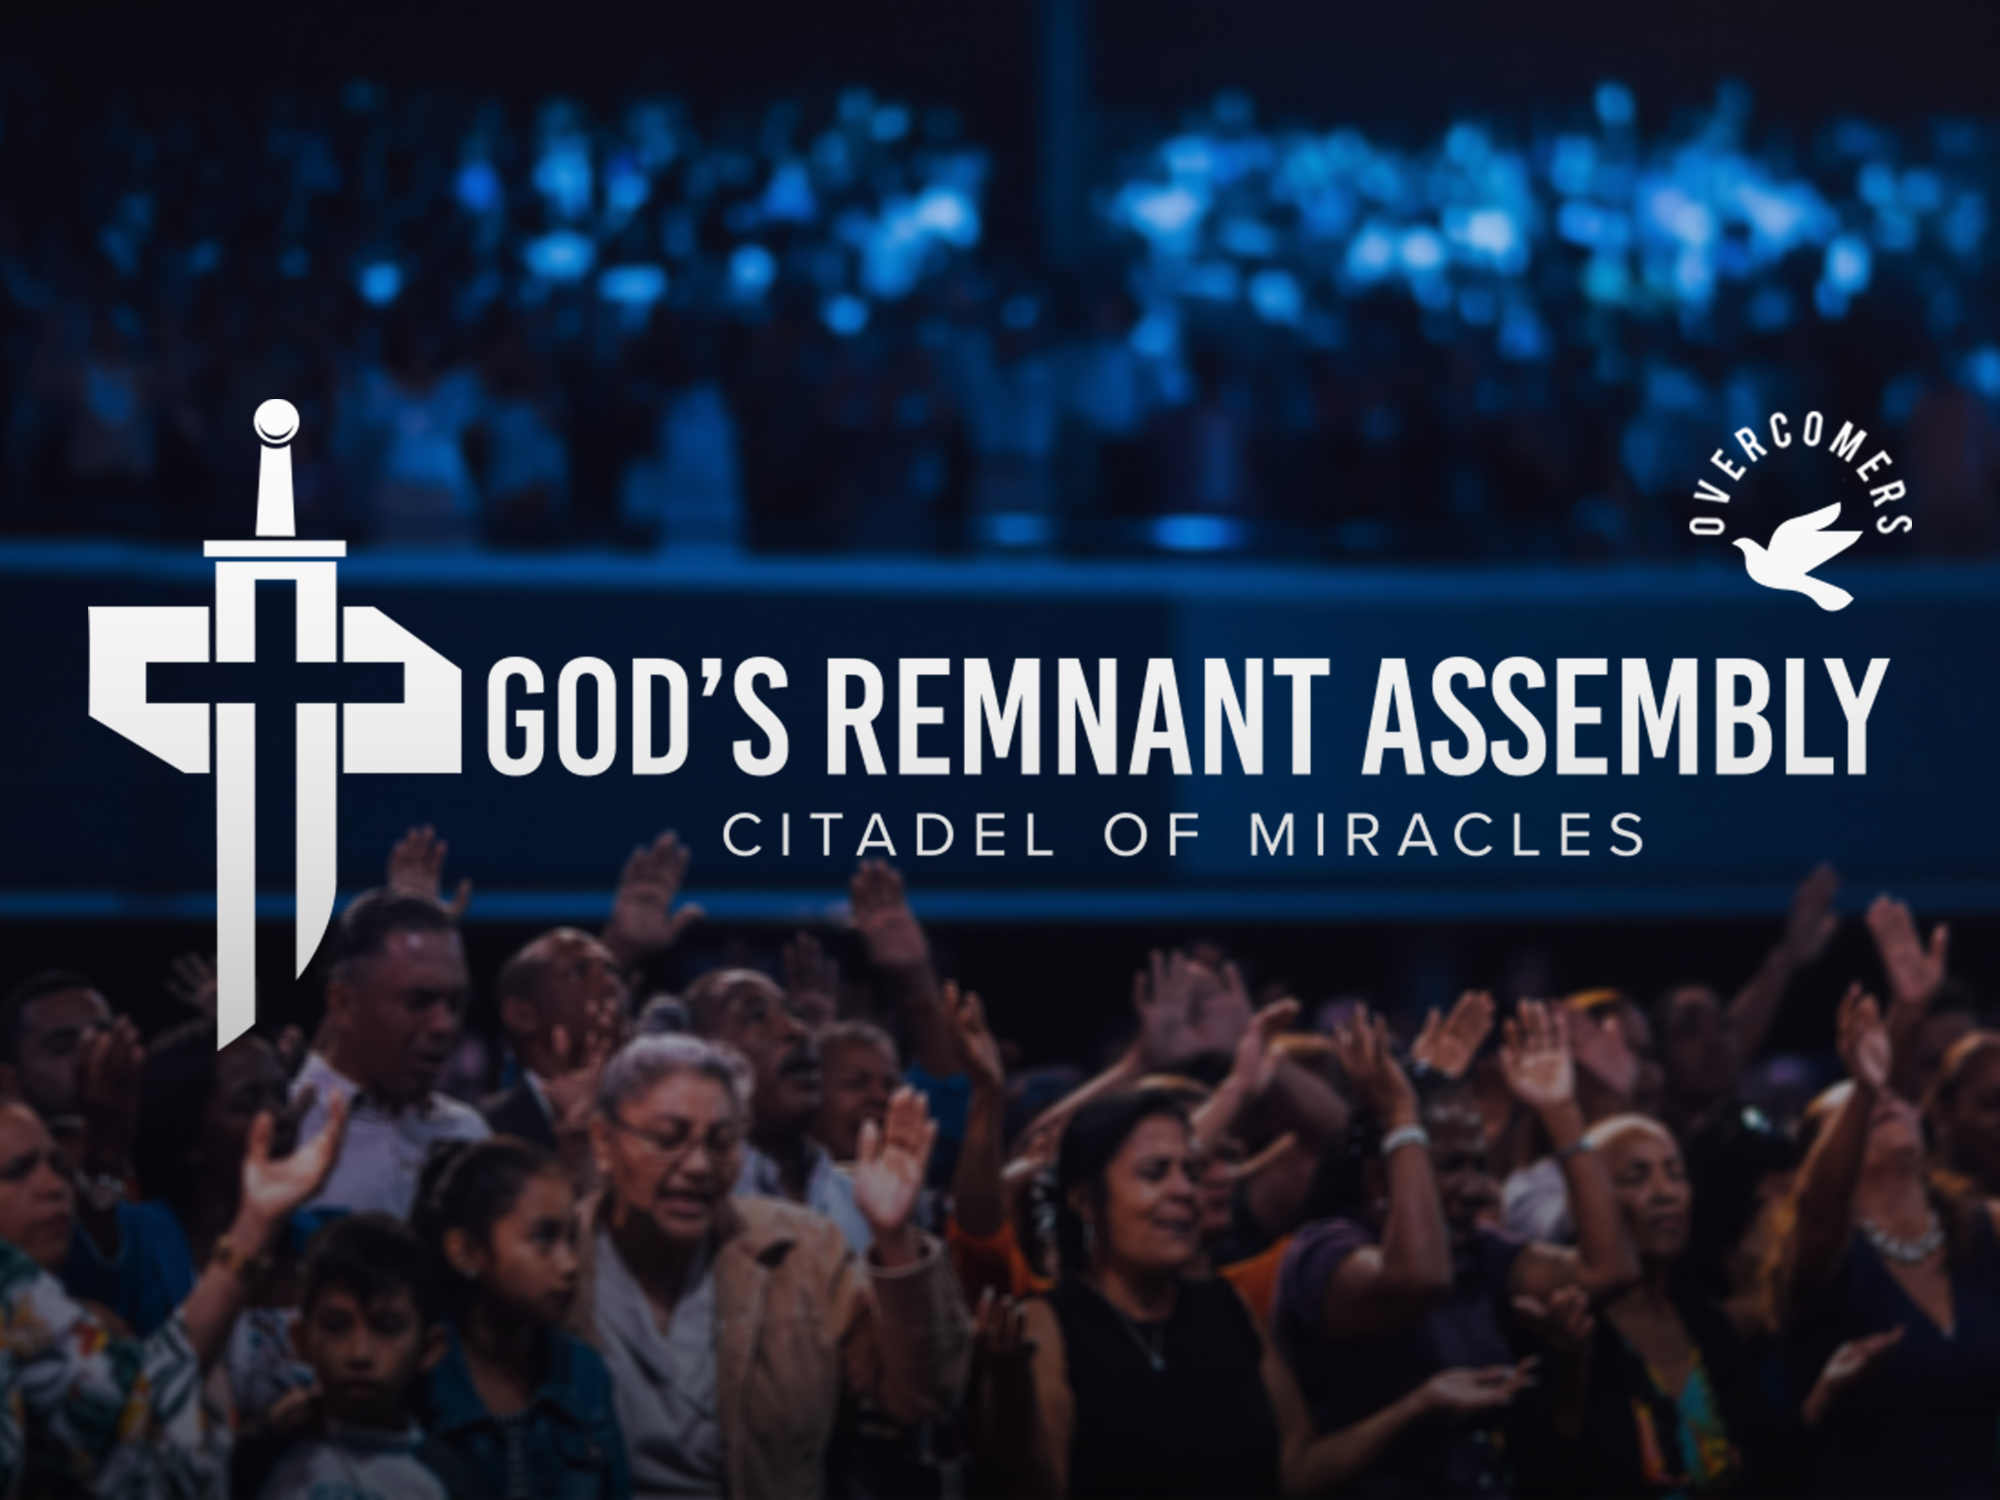 God's Remnant Assembly - Citadel of Miracles | Columbia, MD